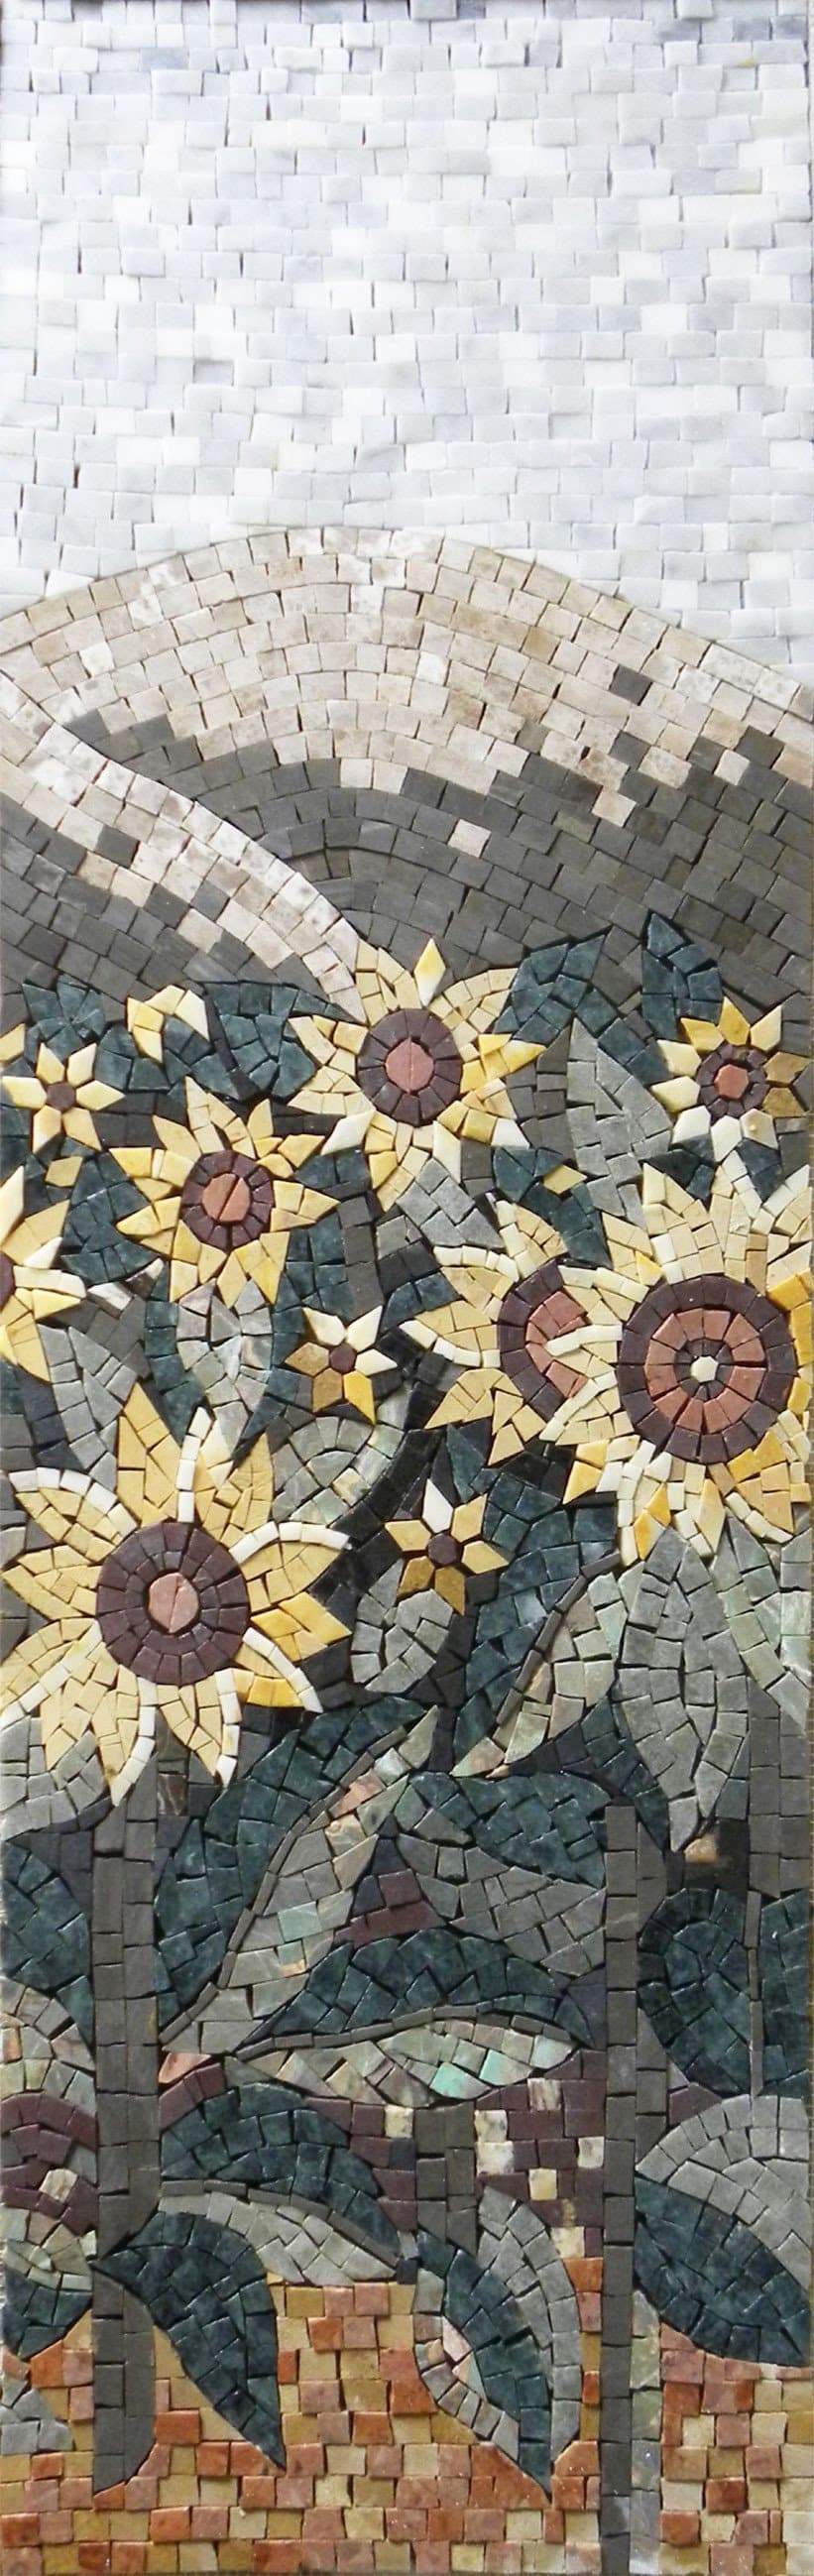 Art Mosaic Patterns - Yellow Flowers